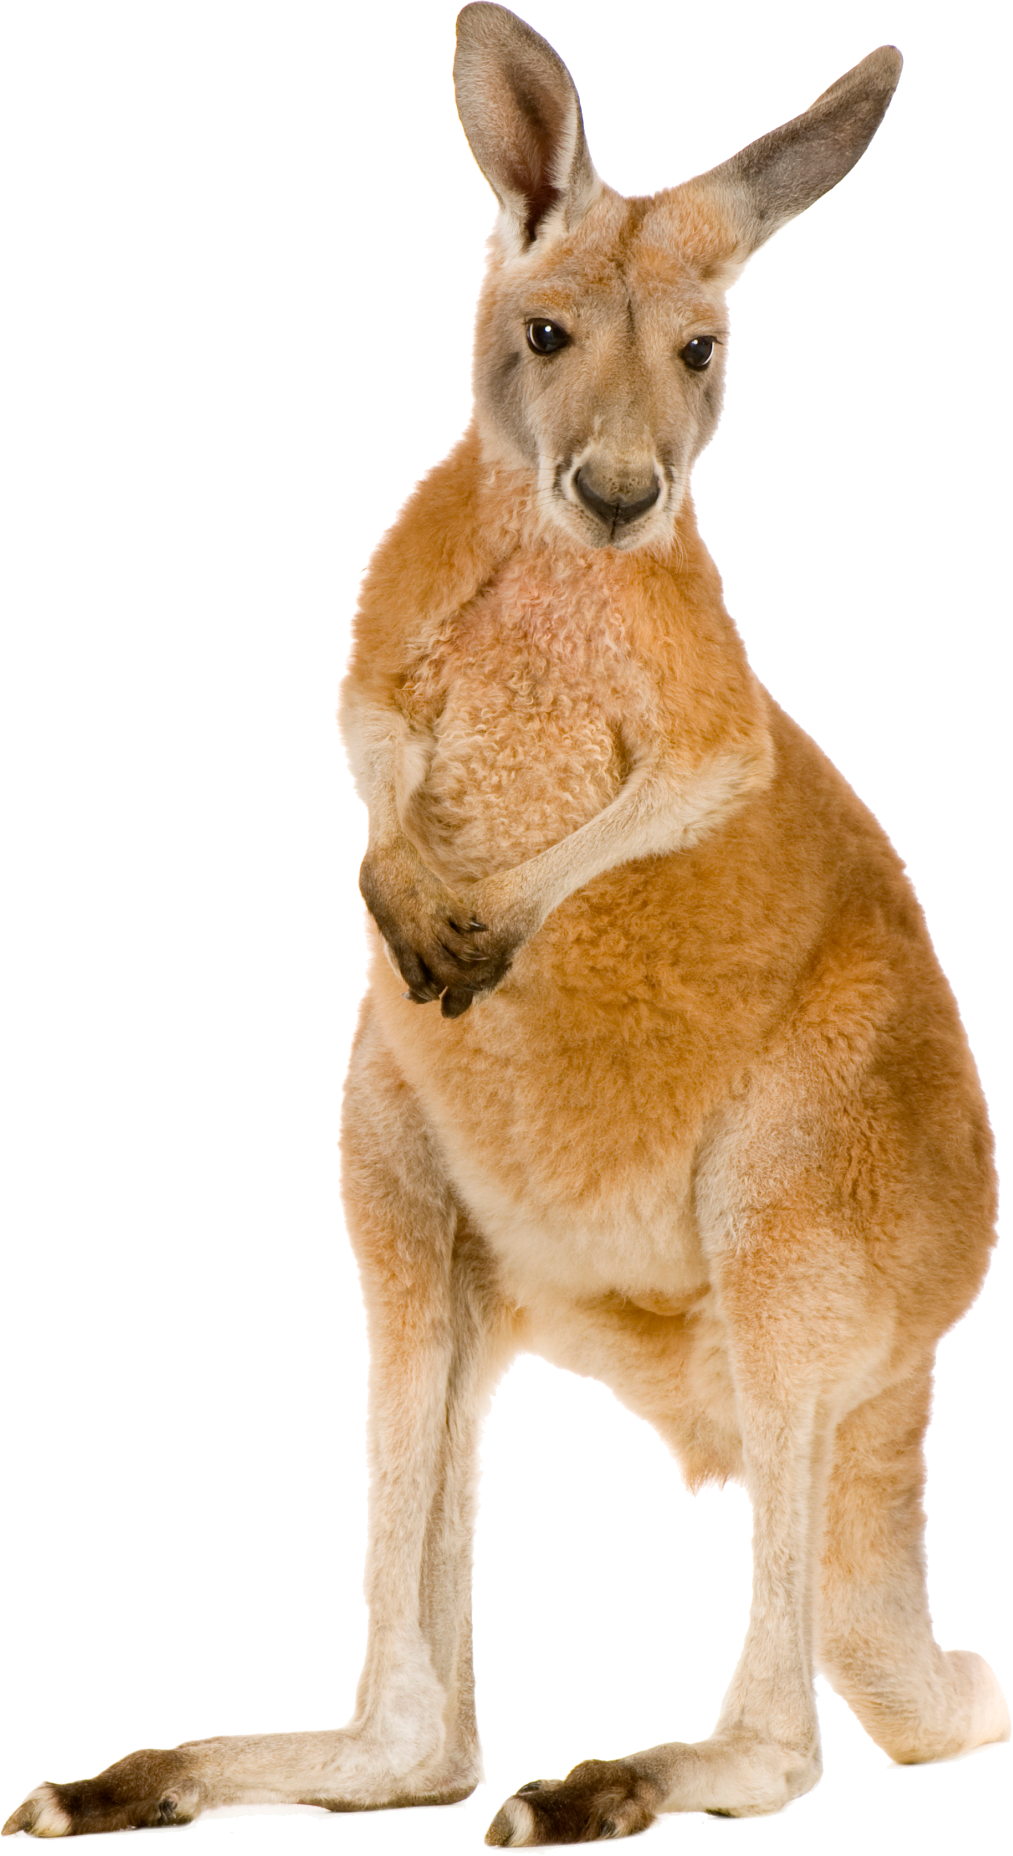 Png transparent images all. Kangaroo clipart foot